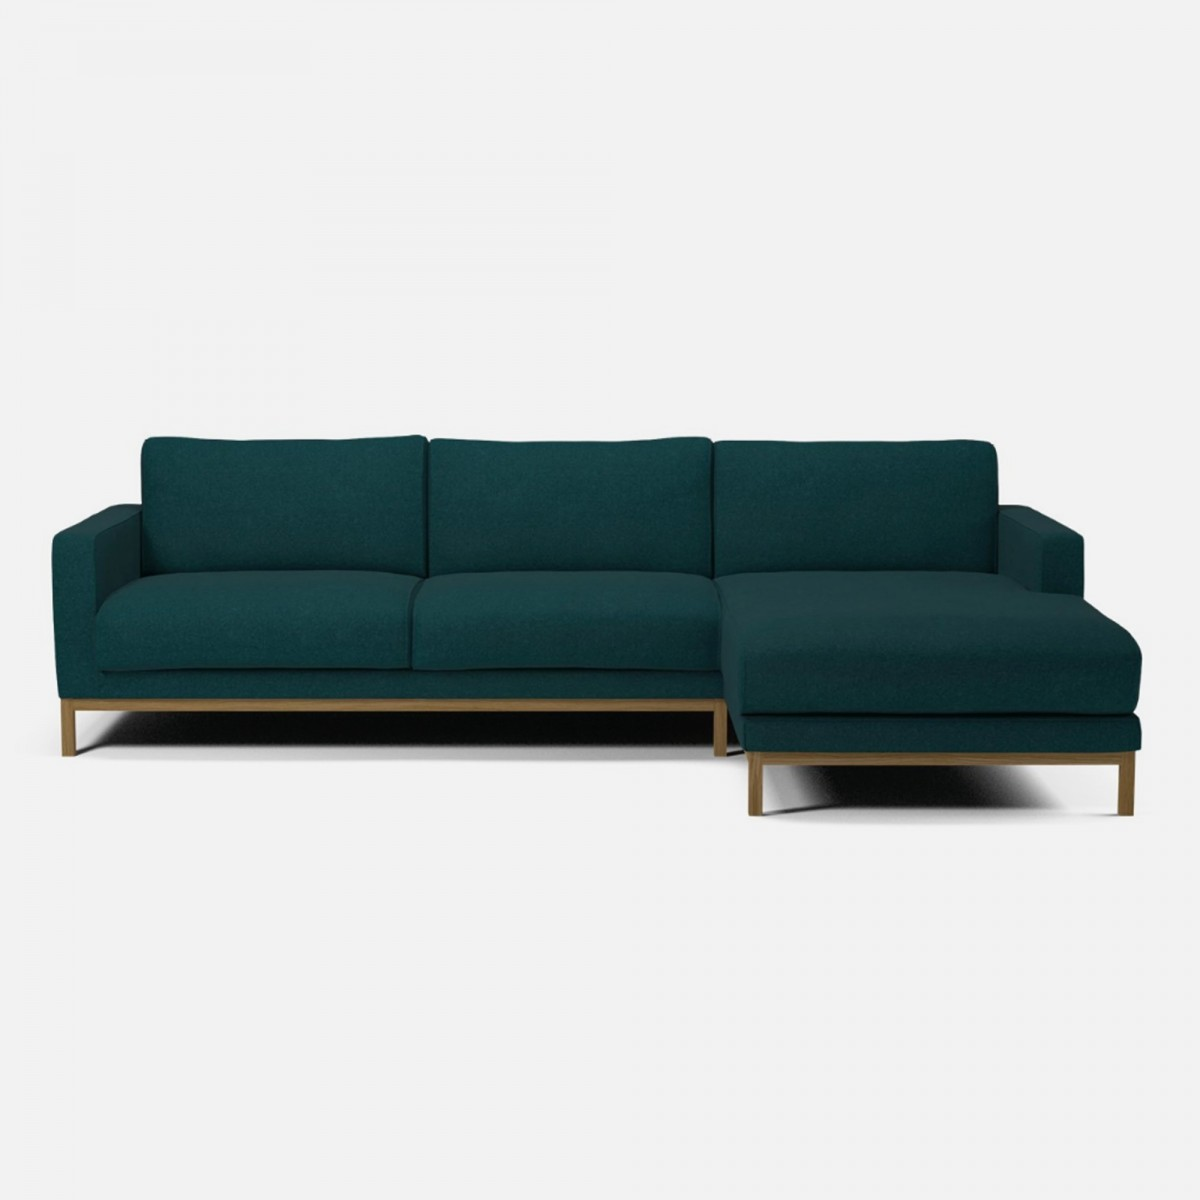 North 3 seaters sofa with chaise longue bolia for Sofas con chaise longue